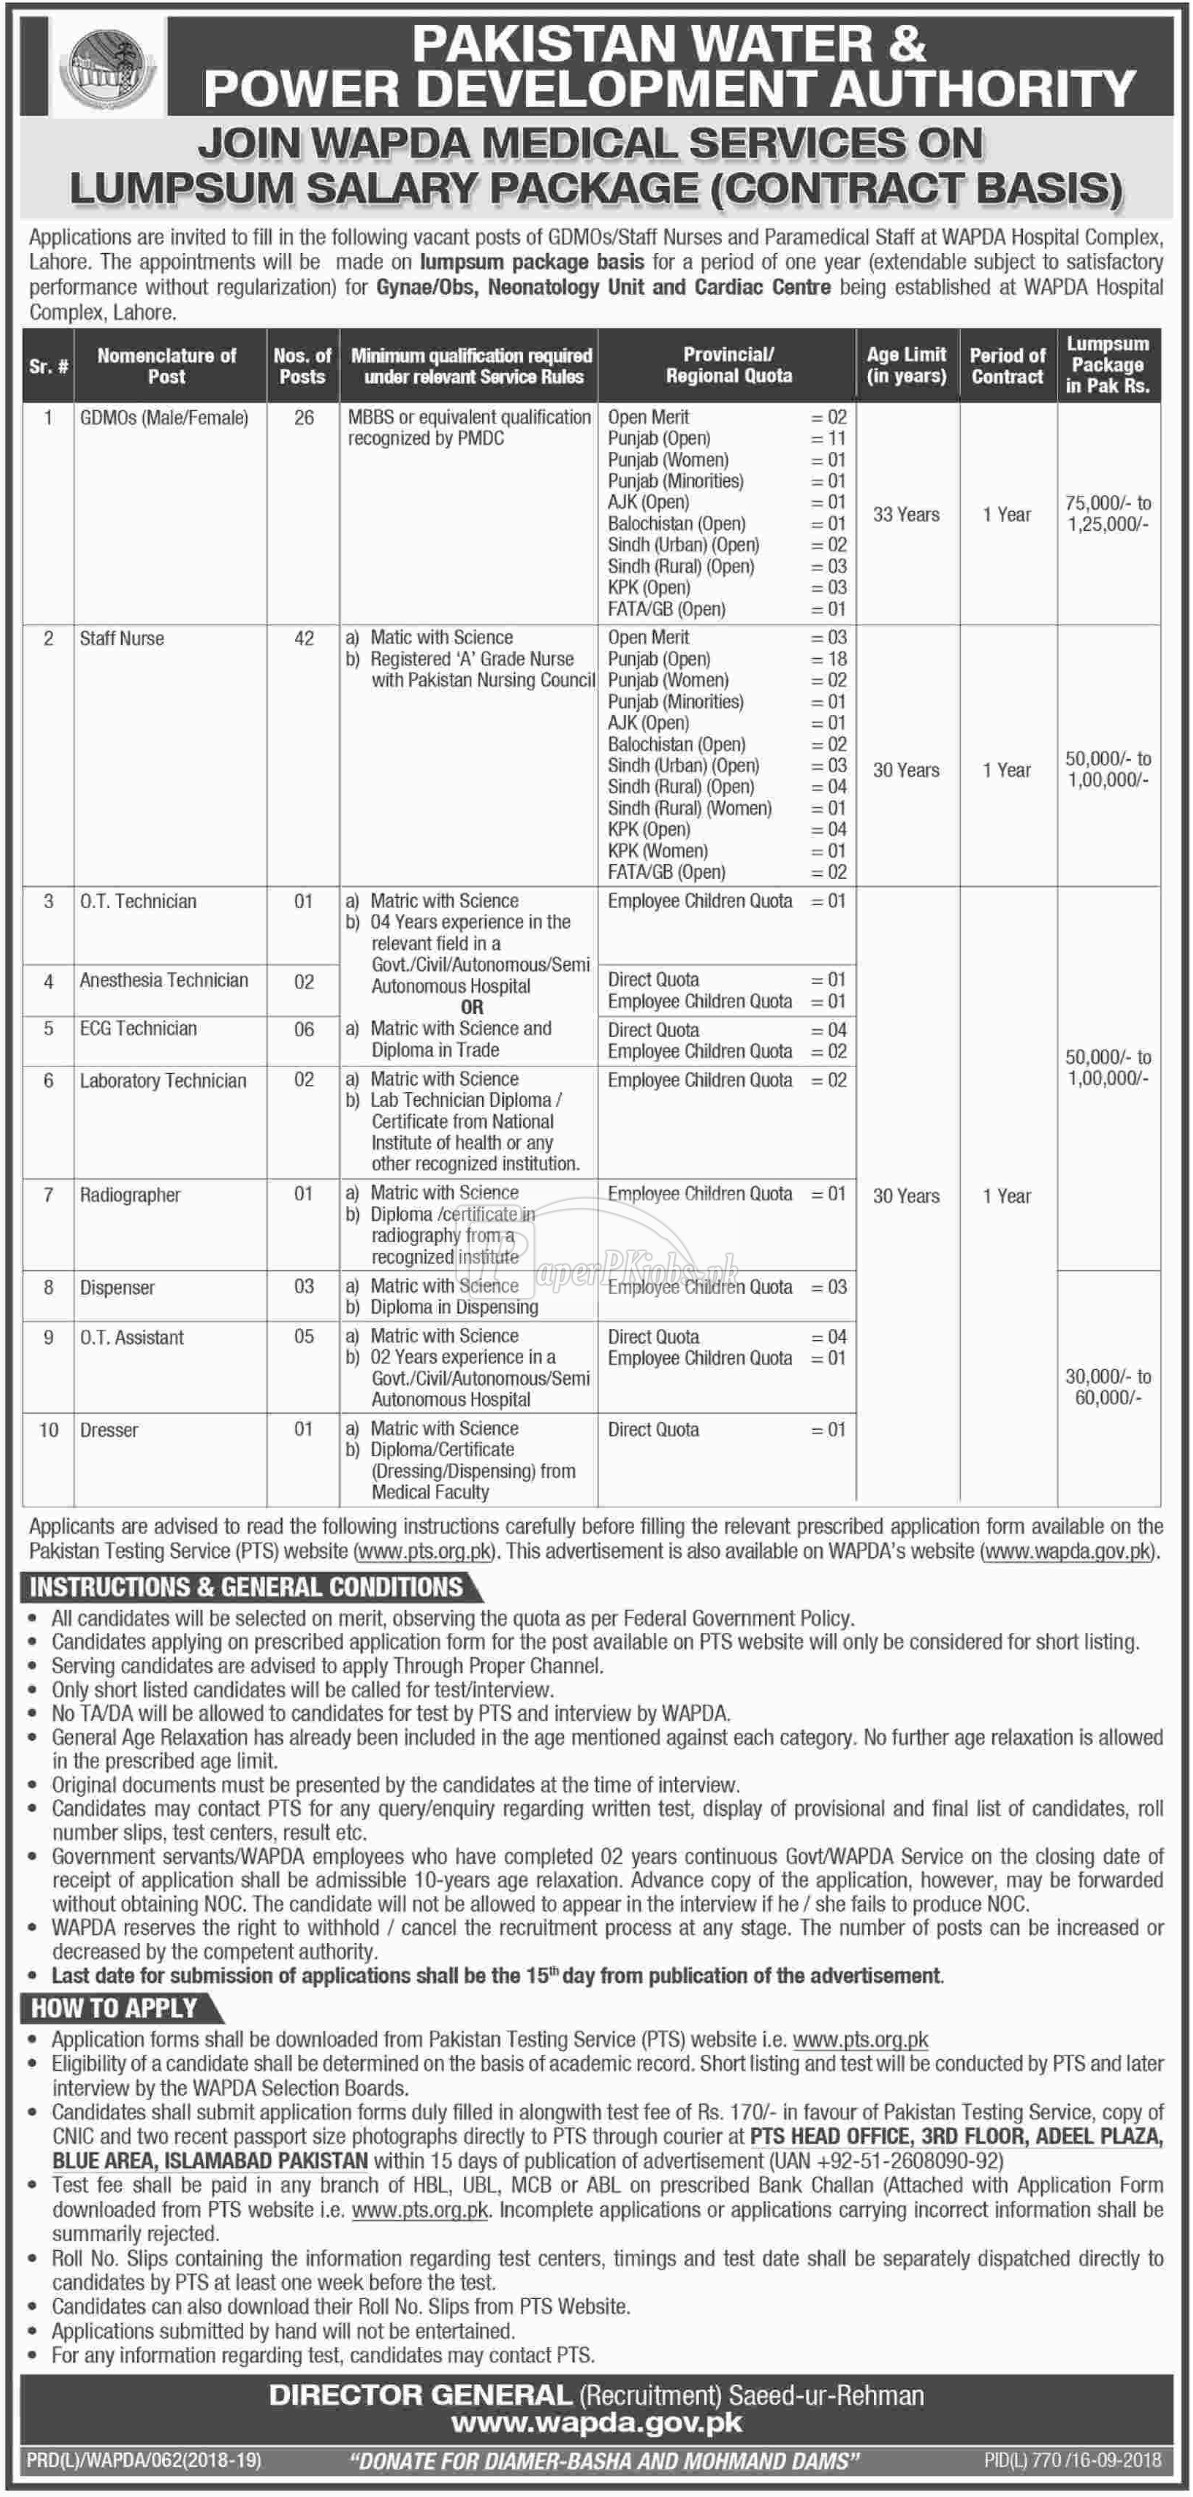 Join WAPDA Medical Services 2018